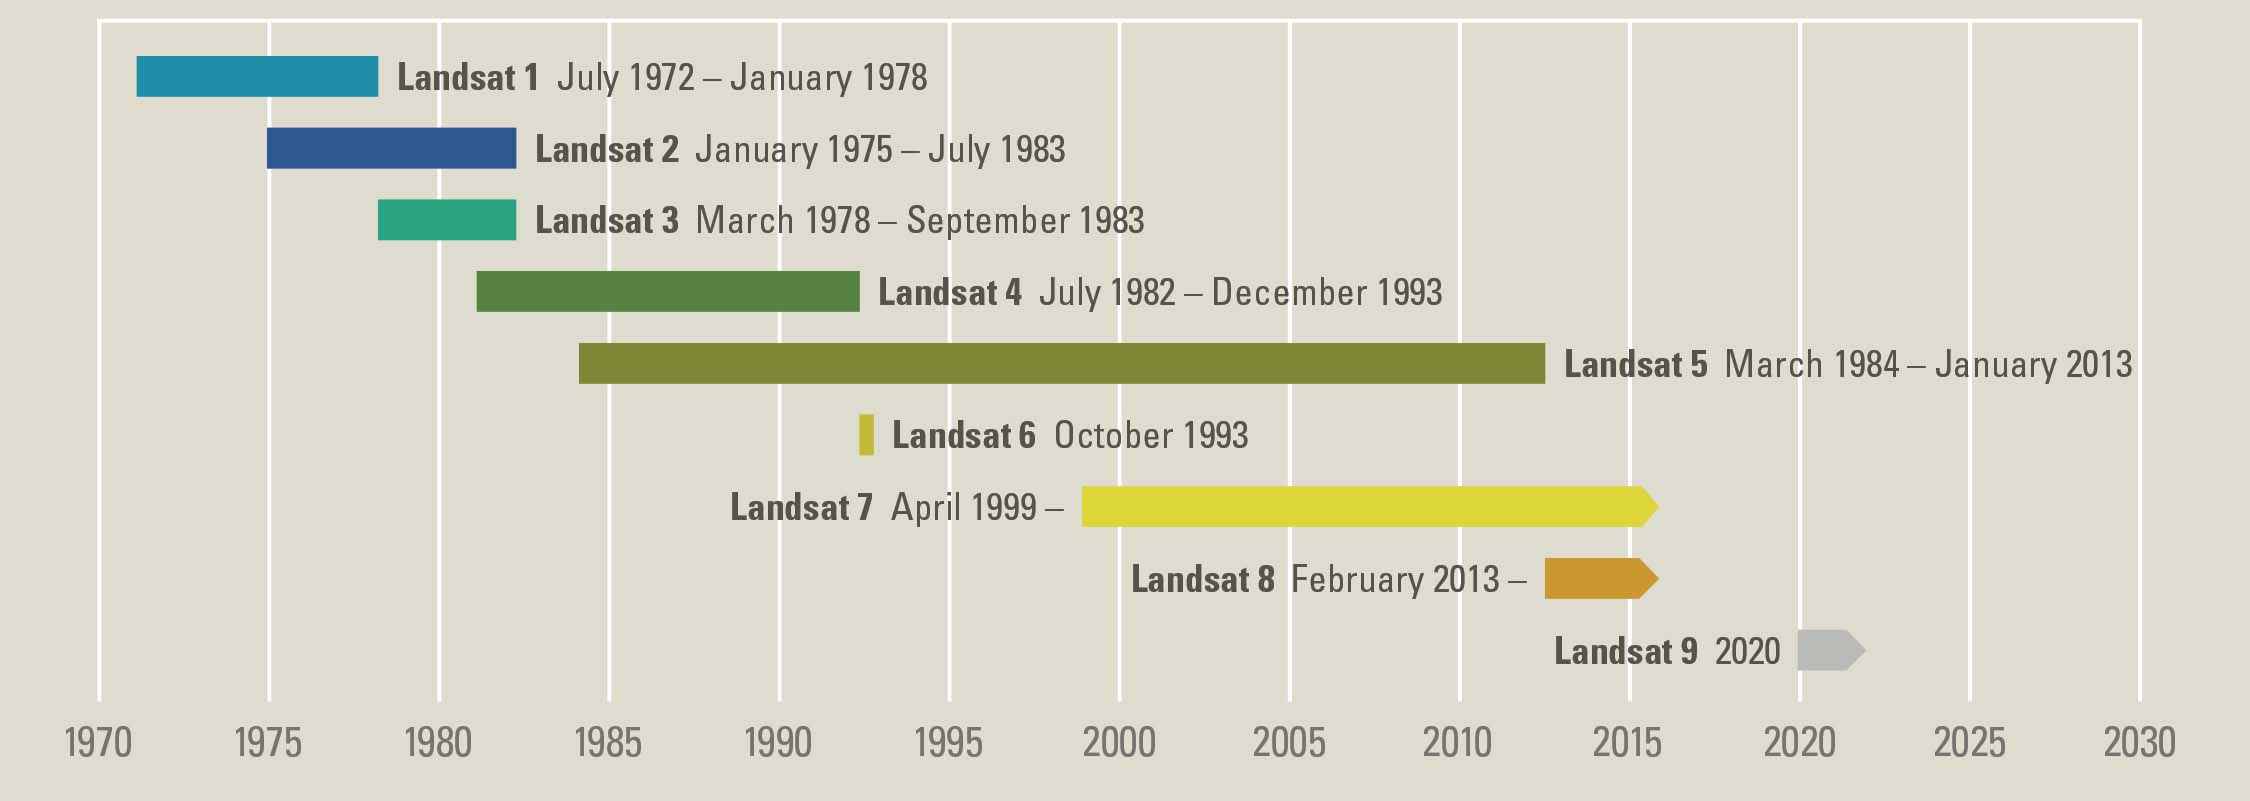 Landsat 40 year timeline source: USGS.